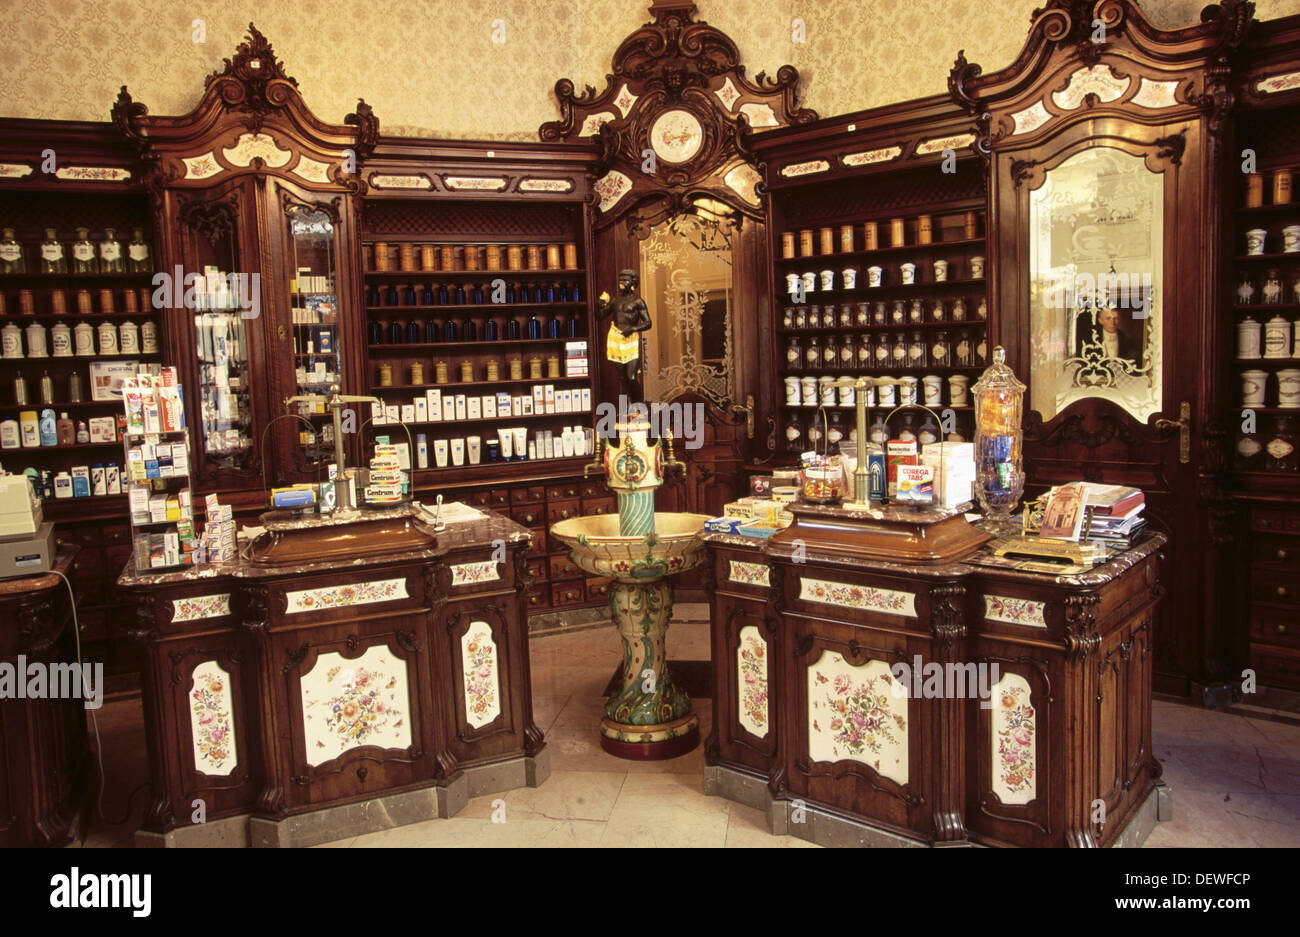 Neo baroque furniture by paolo lucchetta modern furniture design - Neo Baroque Furniture Old Chemist With Neo Baroque Furniture C 1897 P Cs Hungary